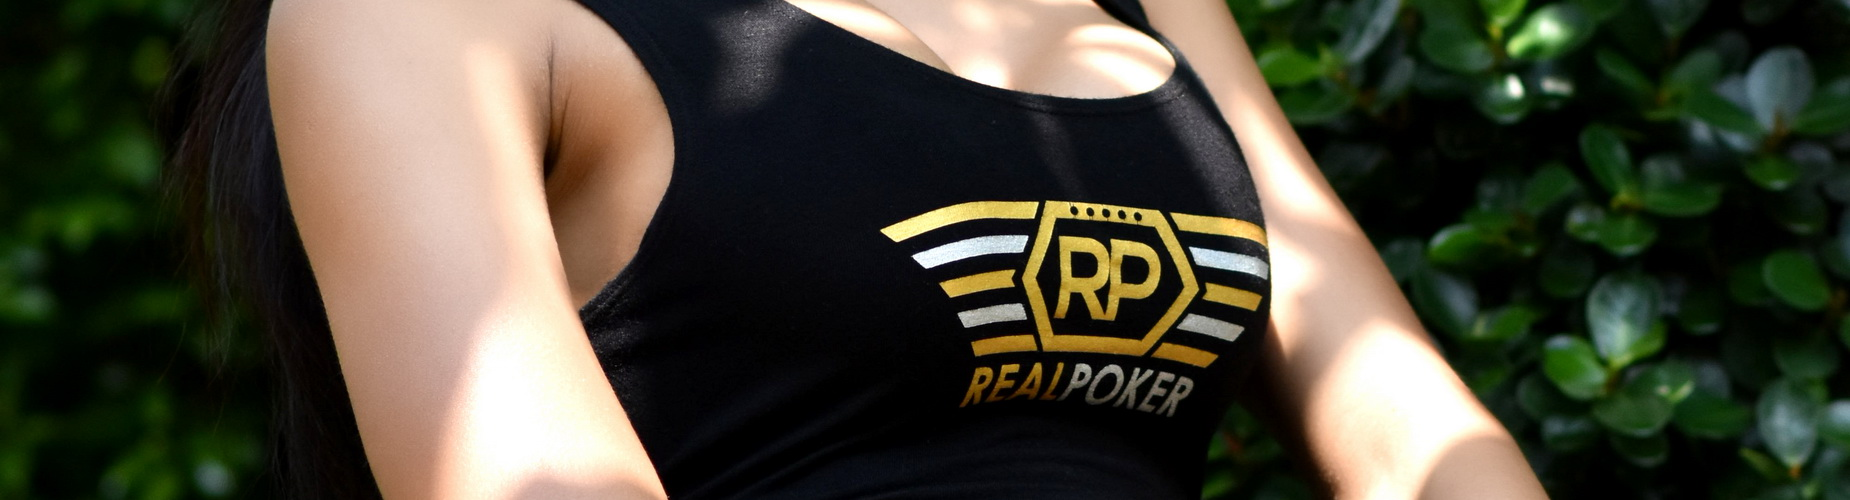 Real Poker Fashion